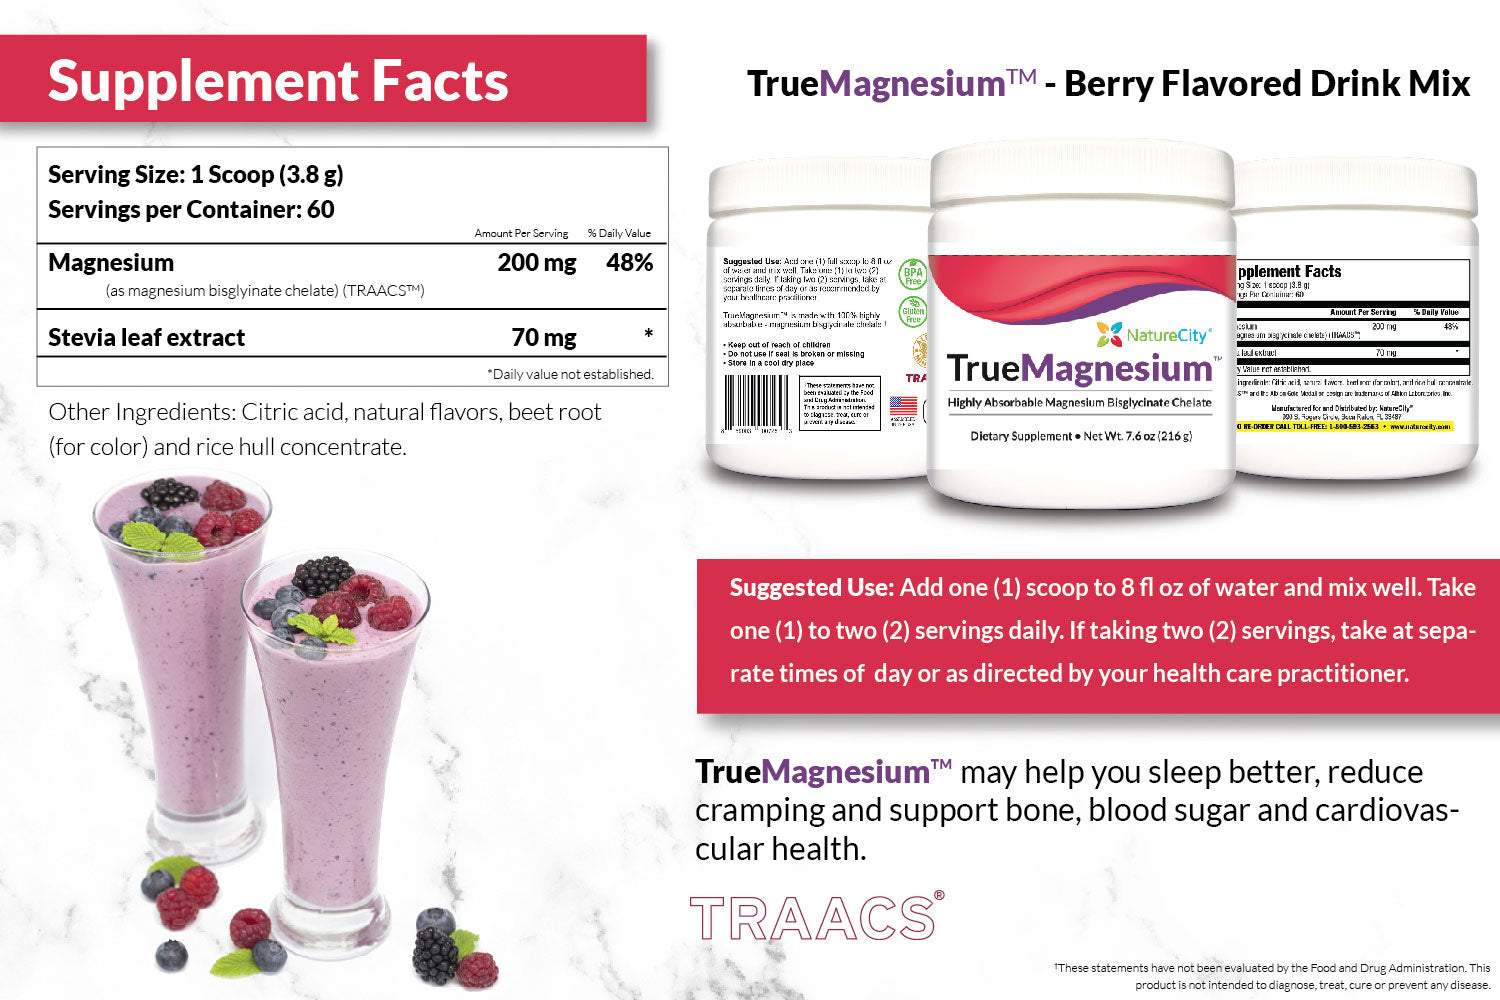 TrueMagnesium Supplement Facts and Suggested Use